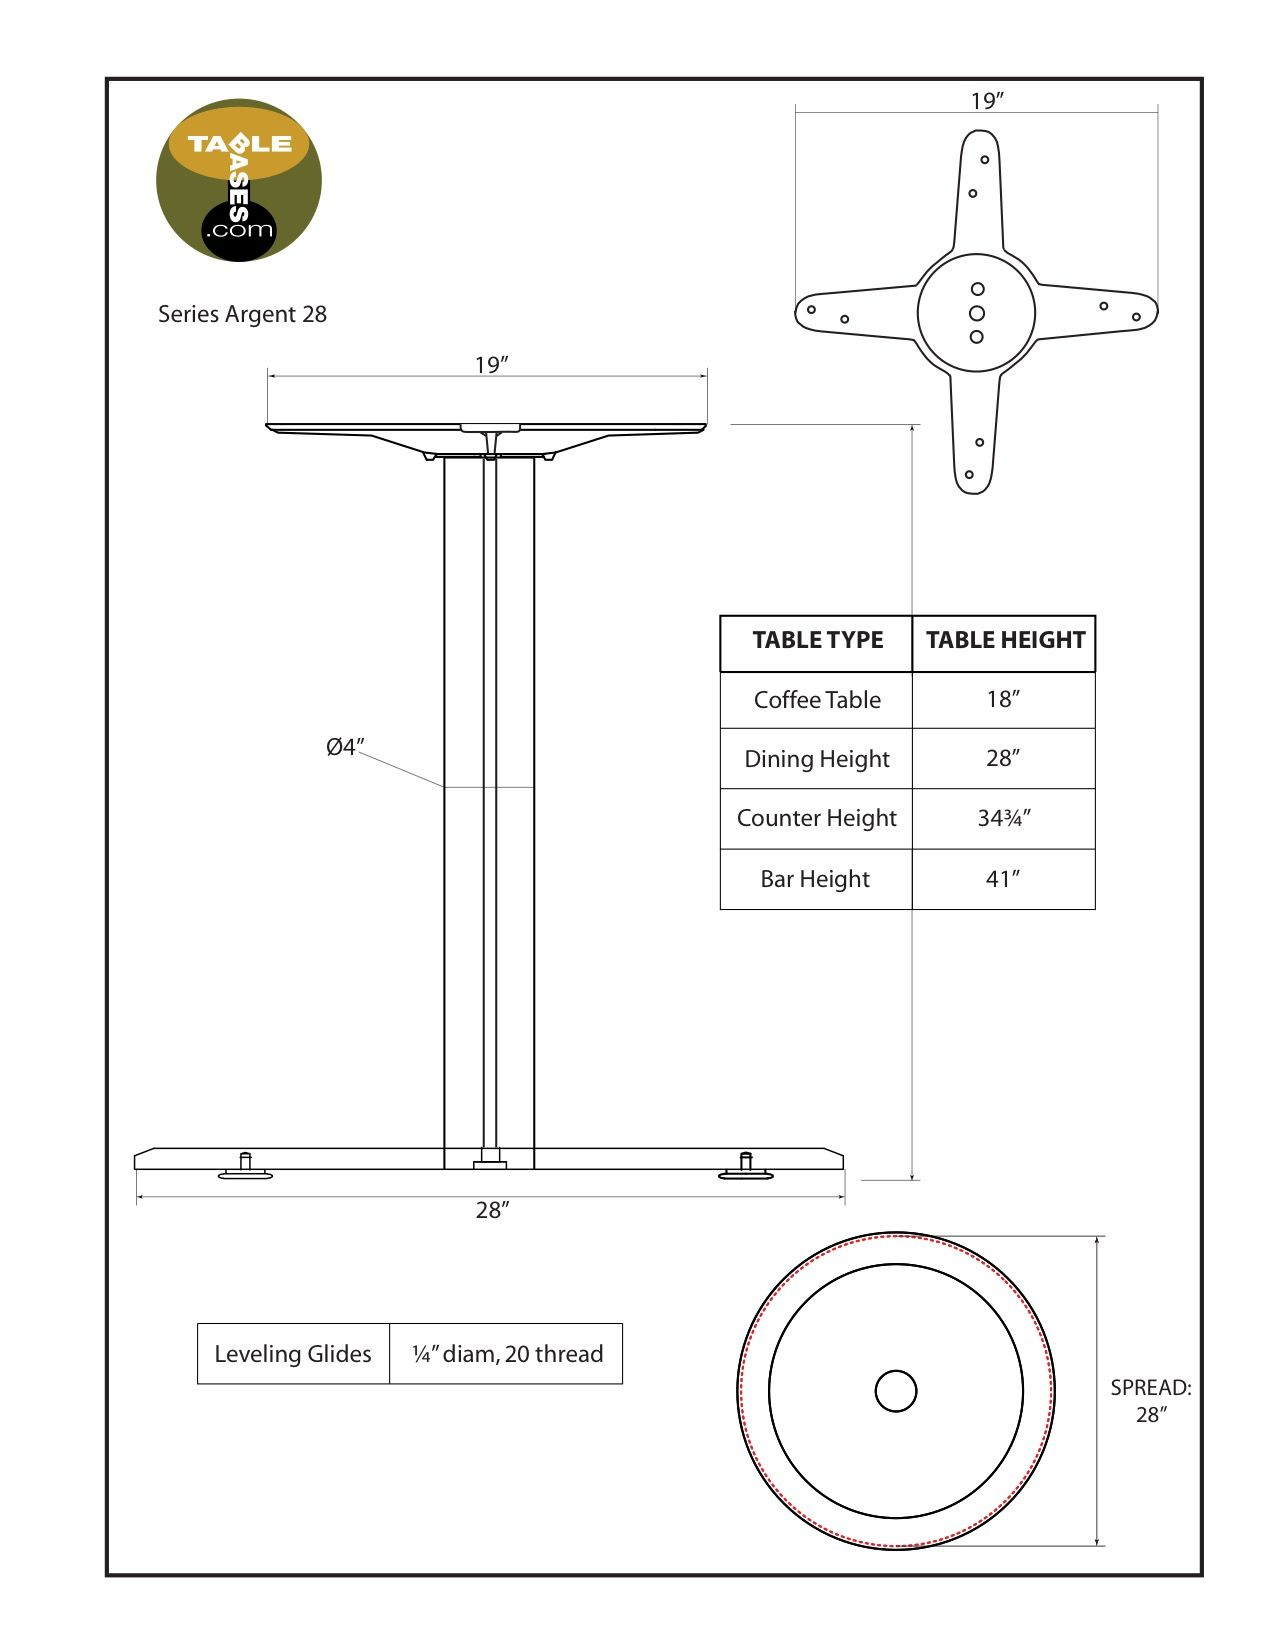 Argent-28 Specifications